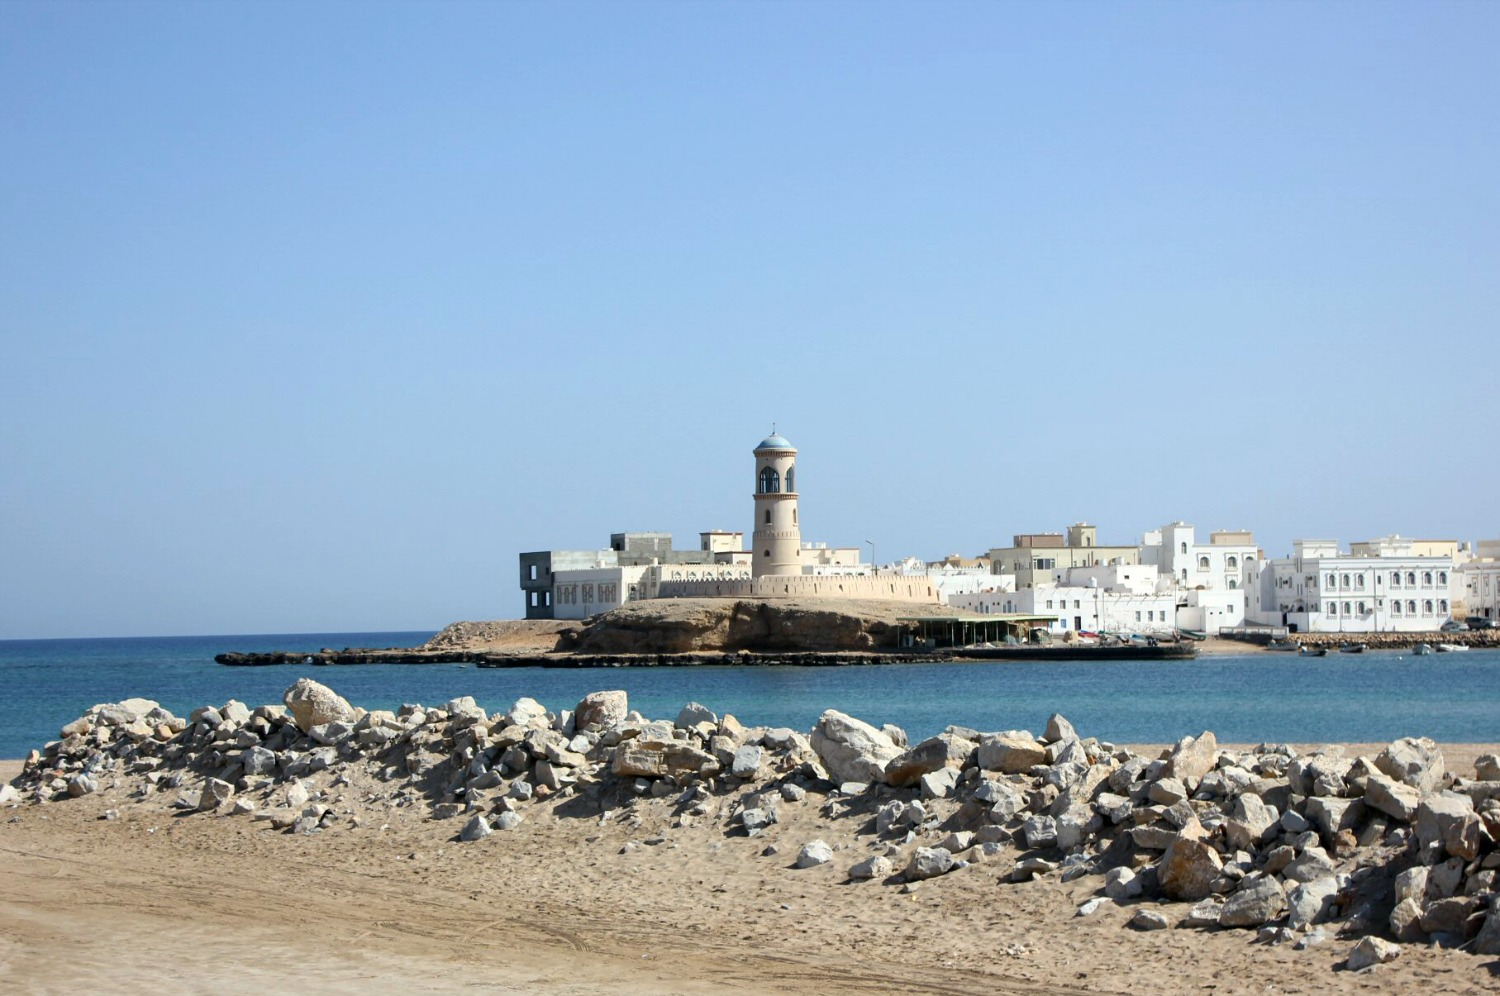 Looking across the blue water to the white and sand coloured lighthouse and buildings of Sur in Oman - my nine reasons to visit Oman with kids